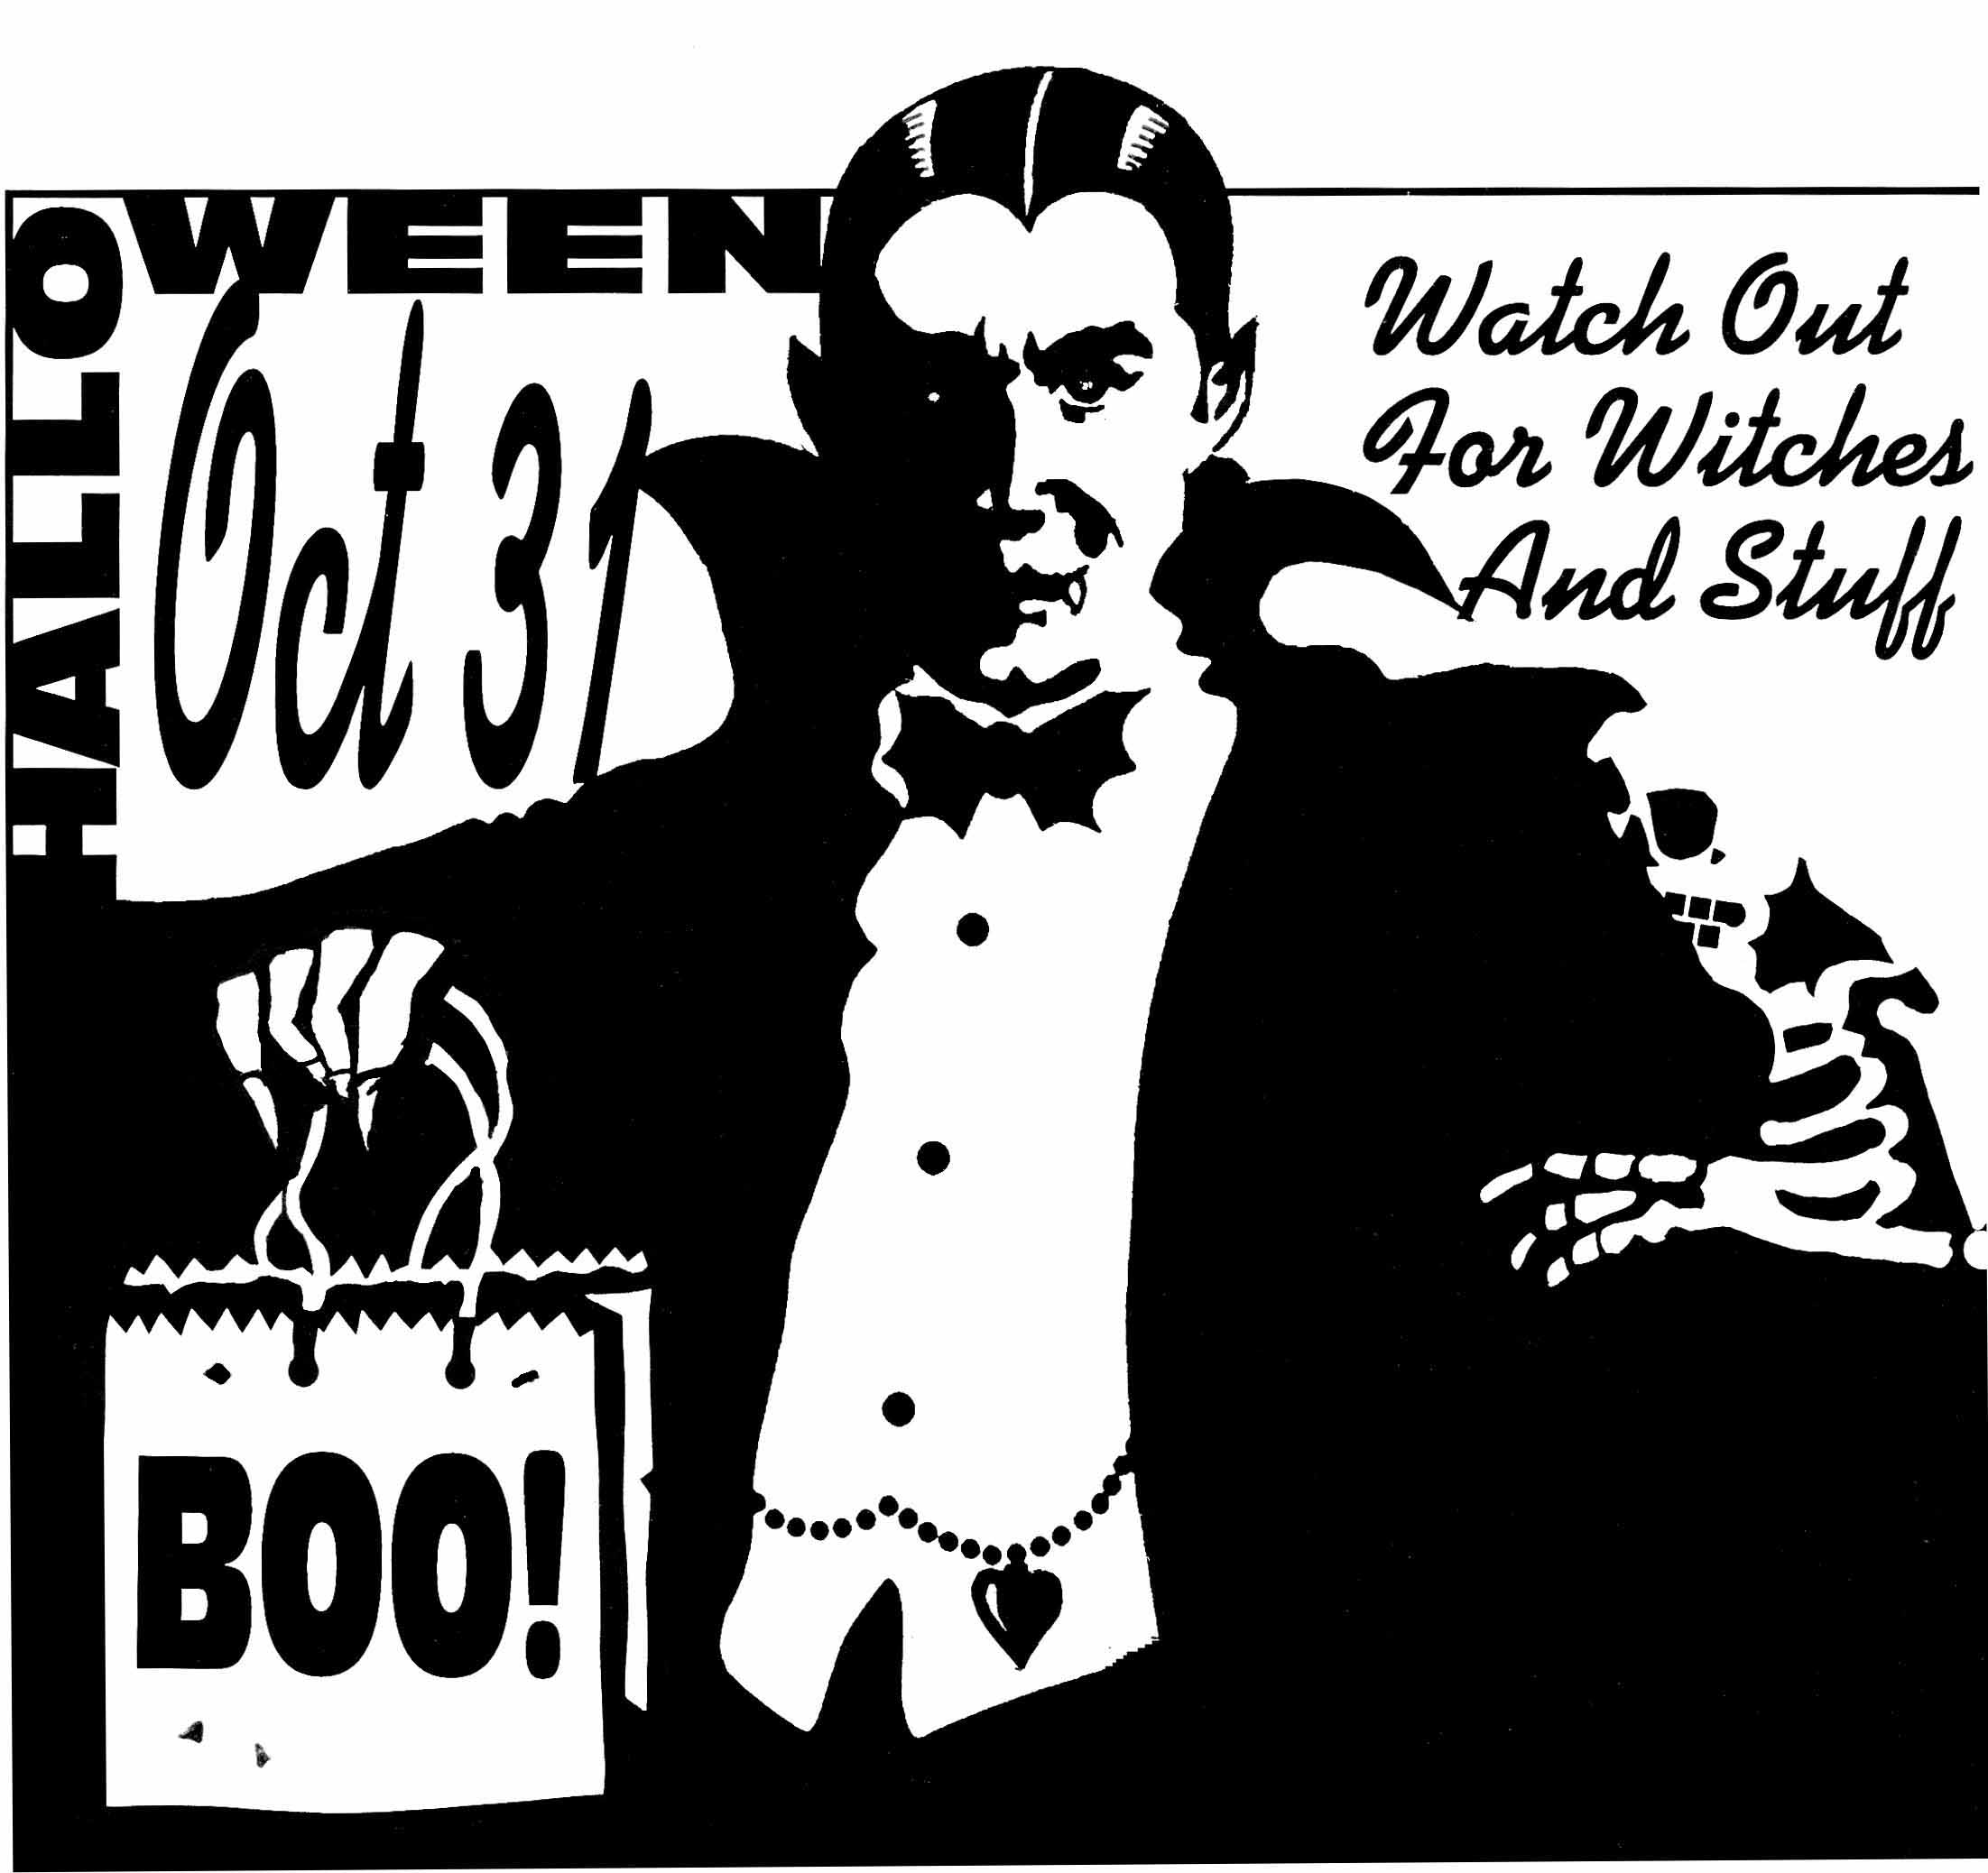 File:Halloween-vampire-boo.jpg - Wikimedia Commons